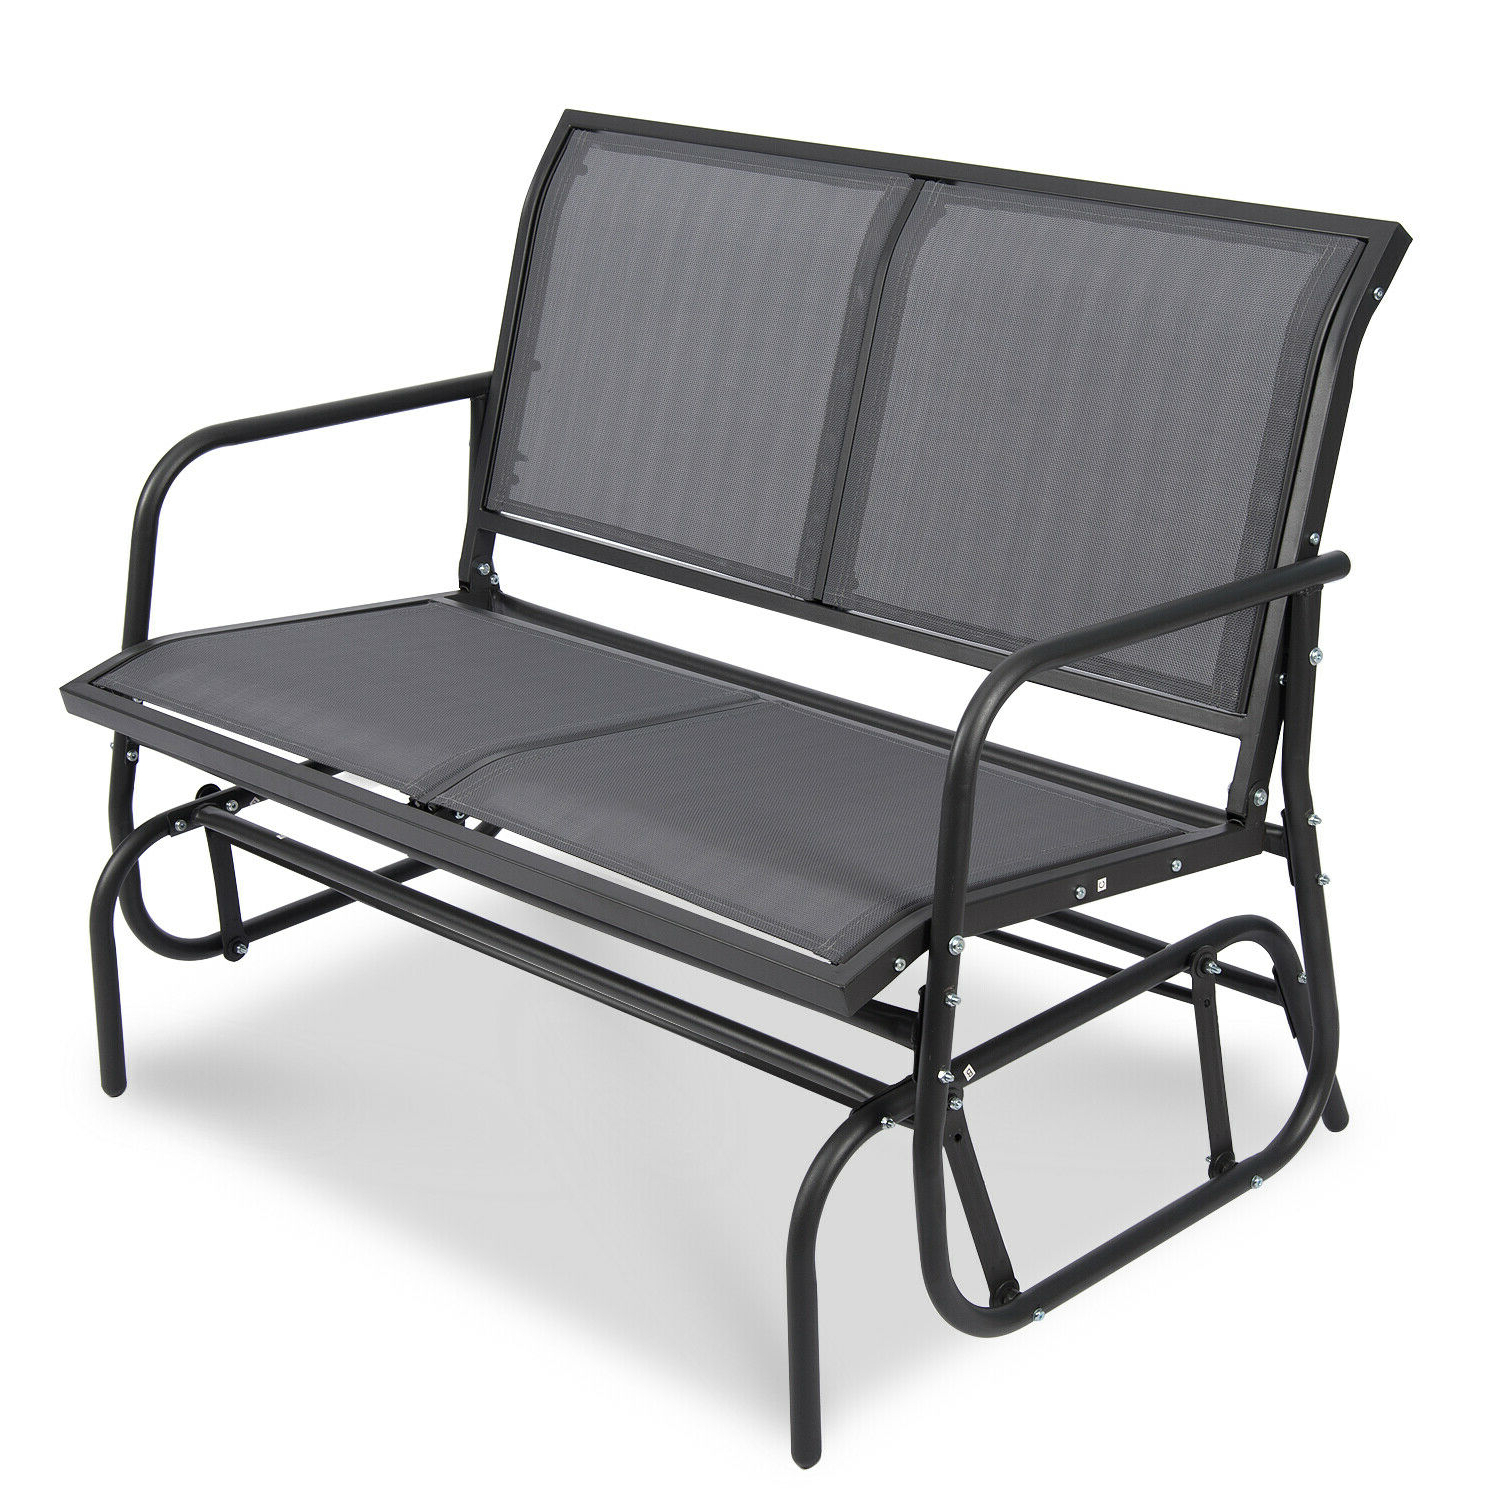 Most Recently Released Patio Garden Glider 2 Person Swing Bench Rocking Chair Porch Outdoor Furniture With Regard To Outdoor Patio Swing Glider Bench Chair S (View 14 of 30)